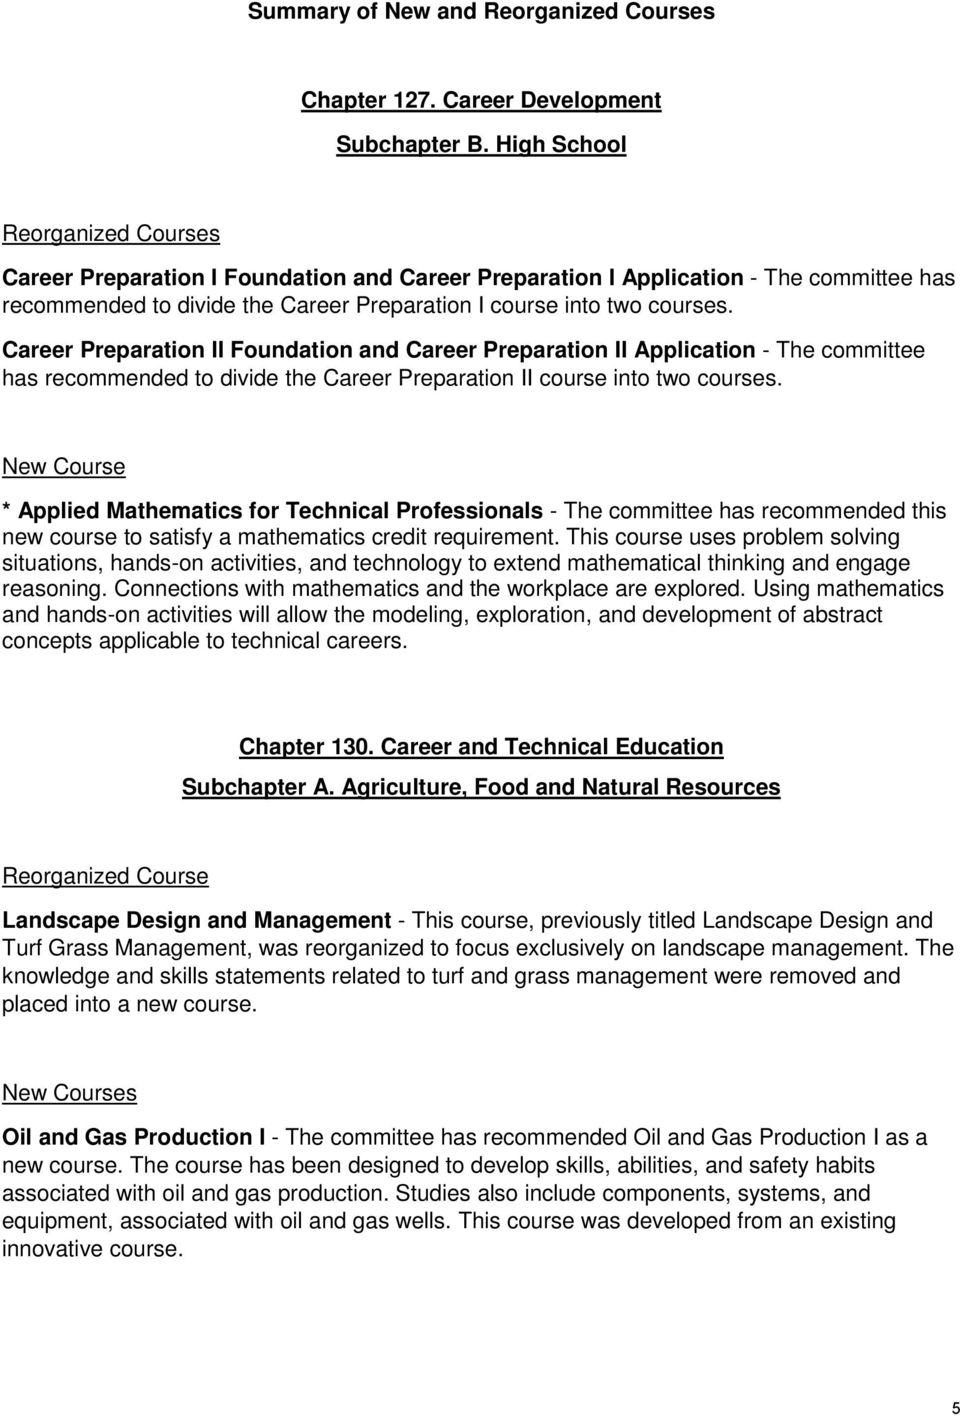 Career Preparation II Foundation and Career Preparation II Application - The committee has recommended to divide the Career Preparation II course into two courses.